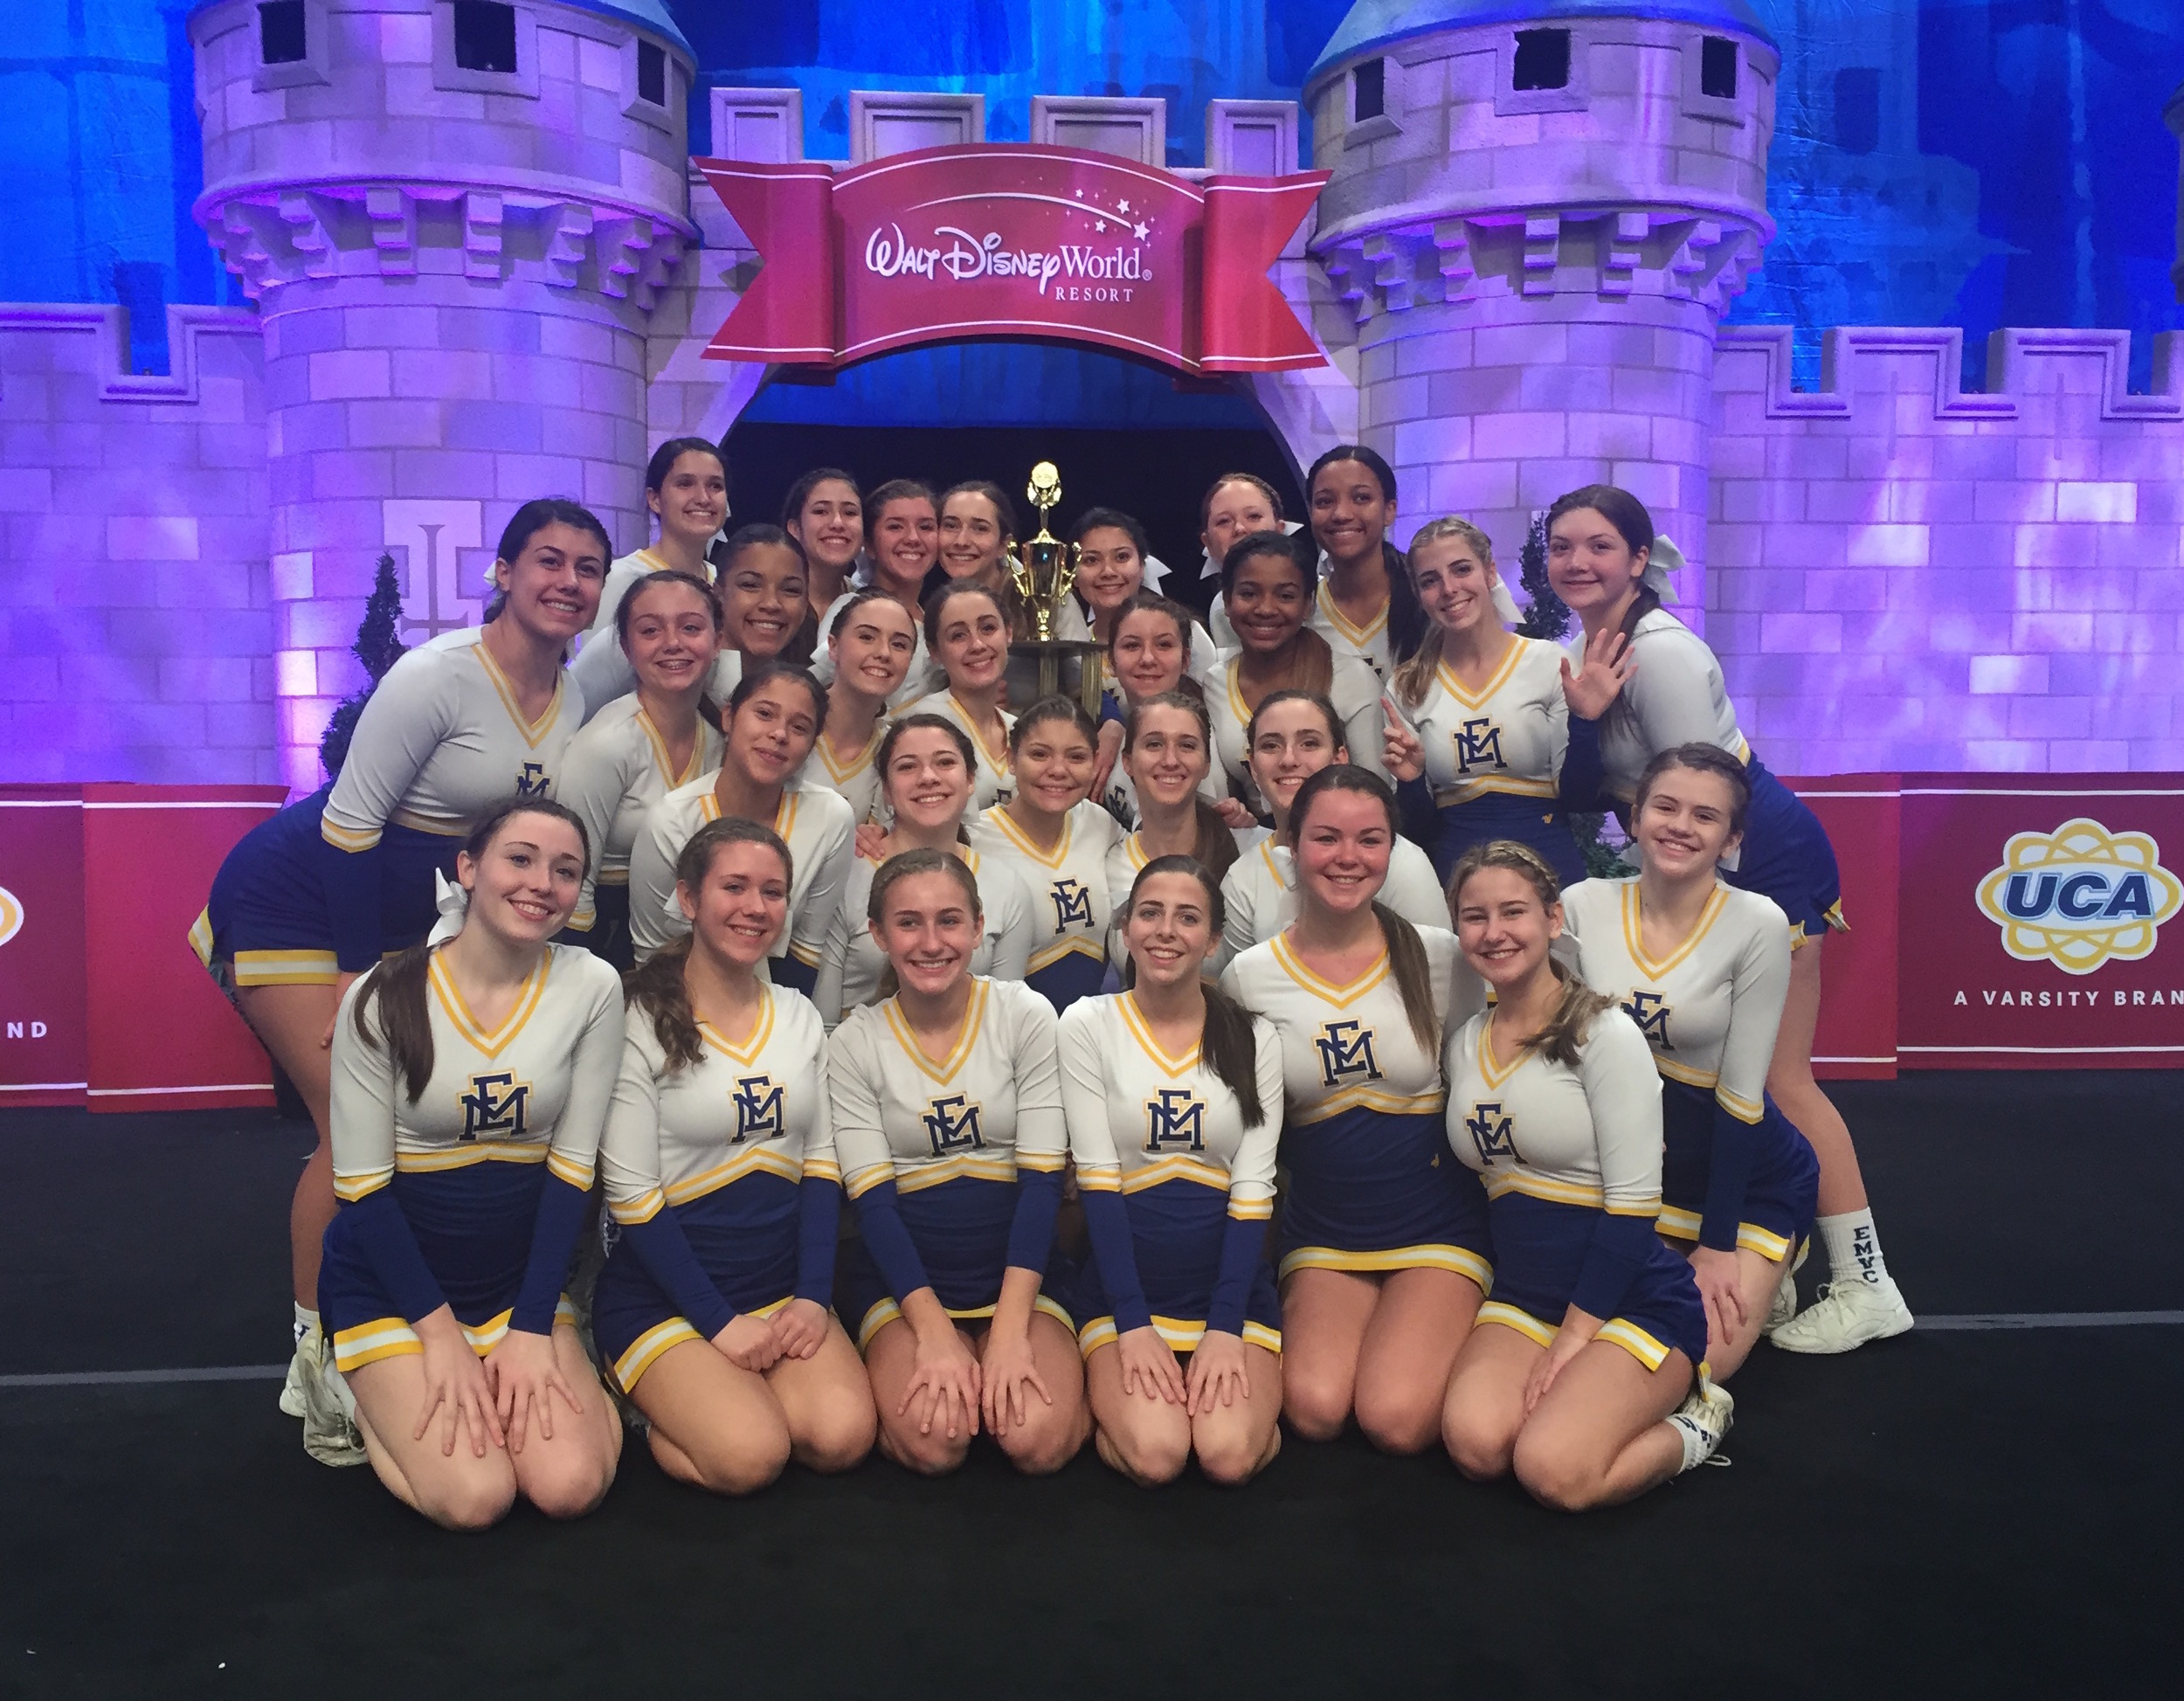 The East Meadow High School varsity cheerleading team was the first team in the school's history to compete in both the national and state championships, while also securing a historic first-place win in the county competition. Above, the team at Walt Disney World.